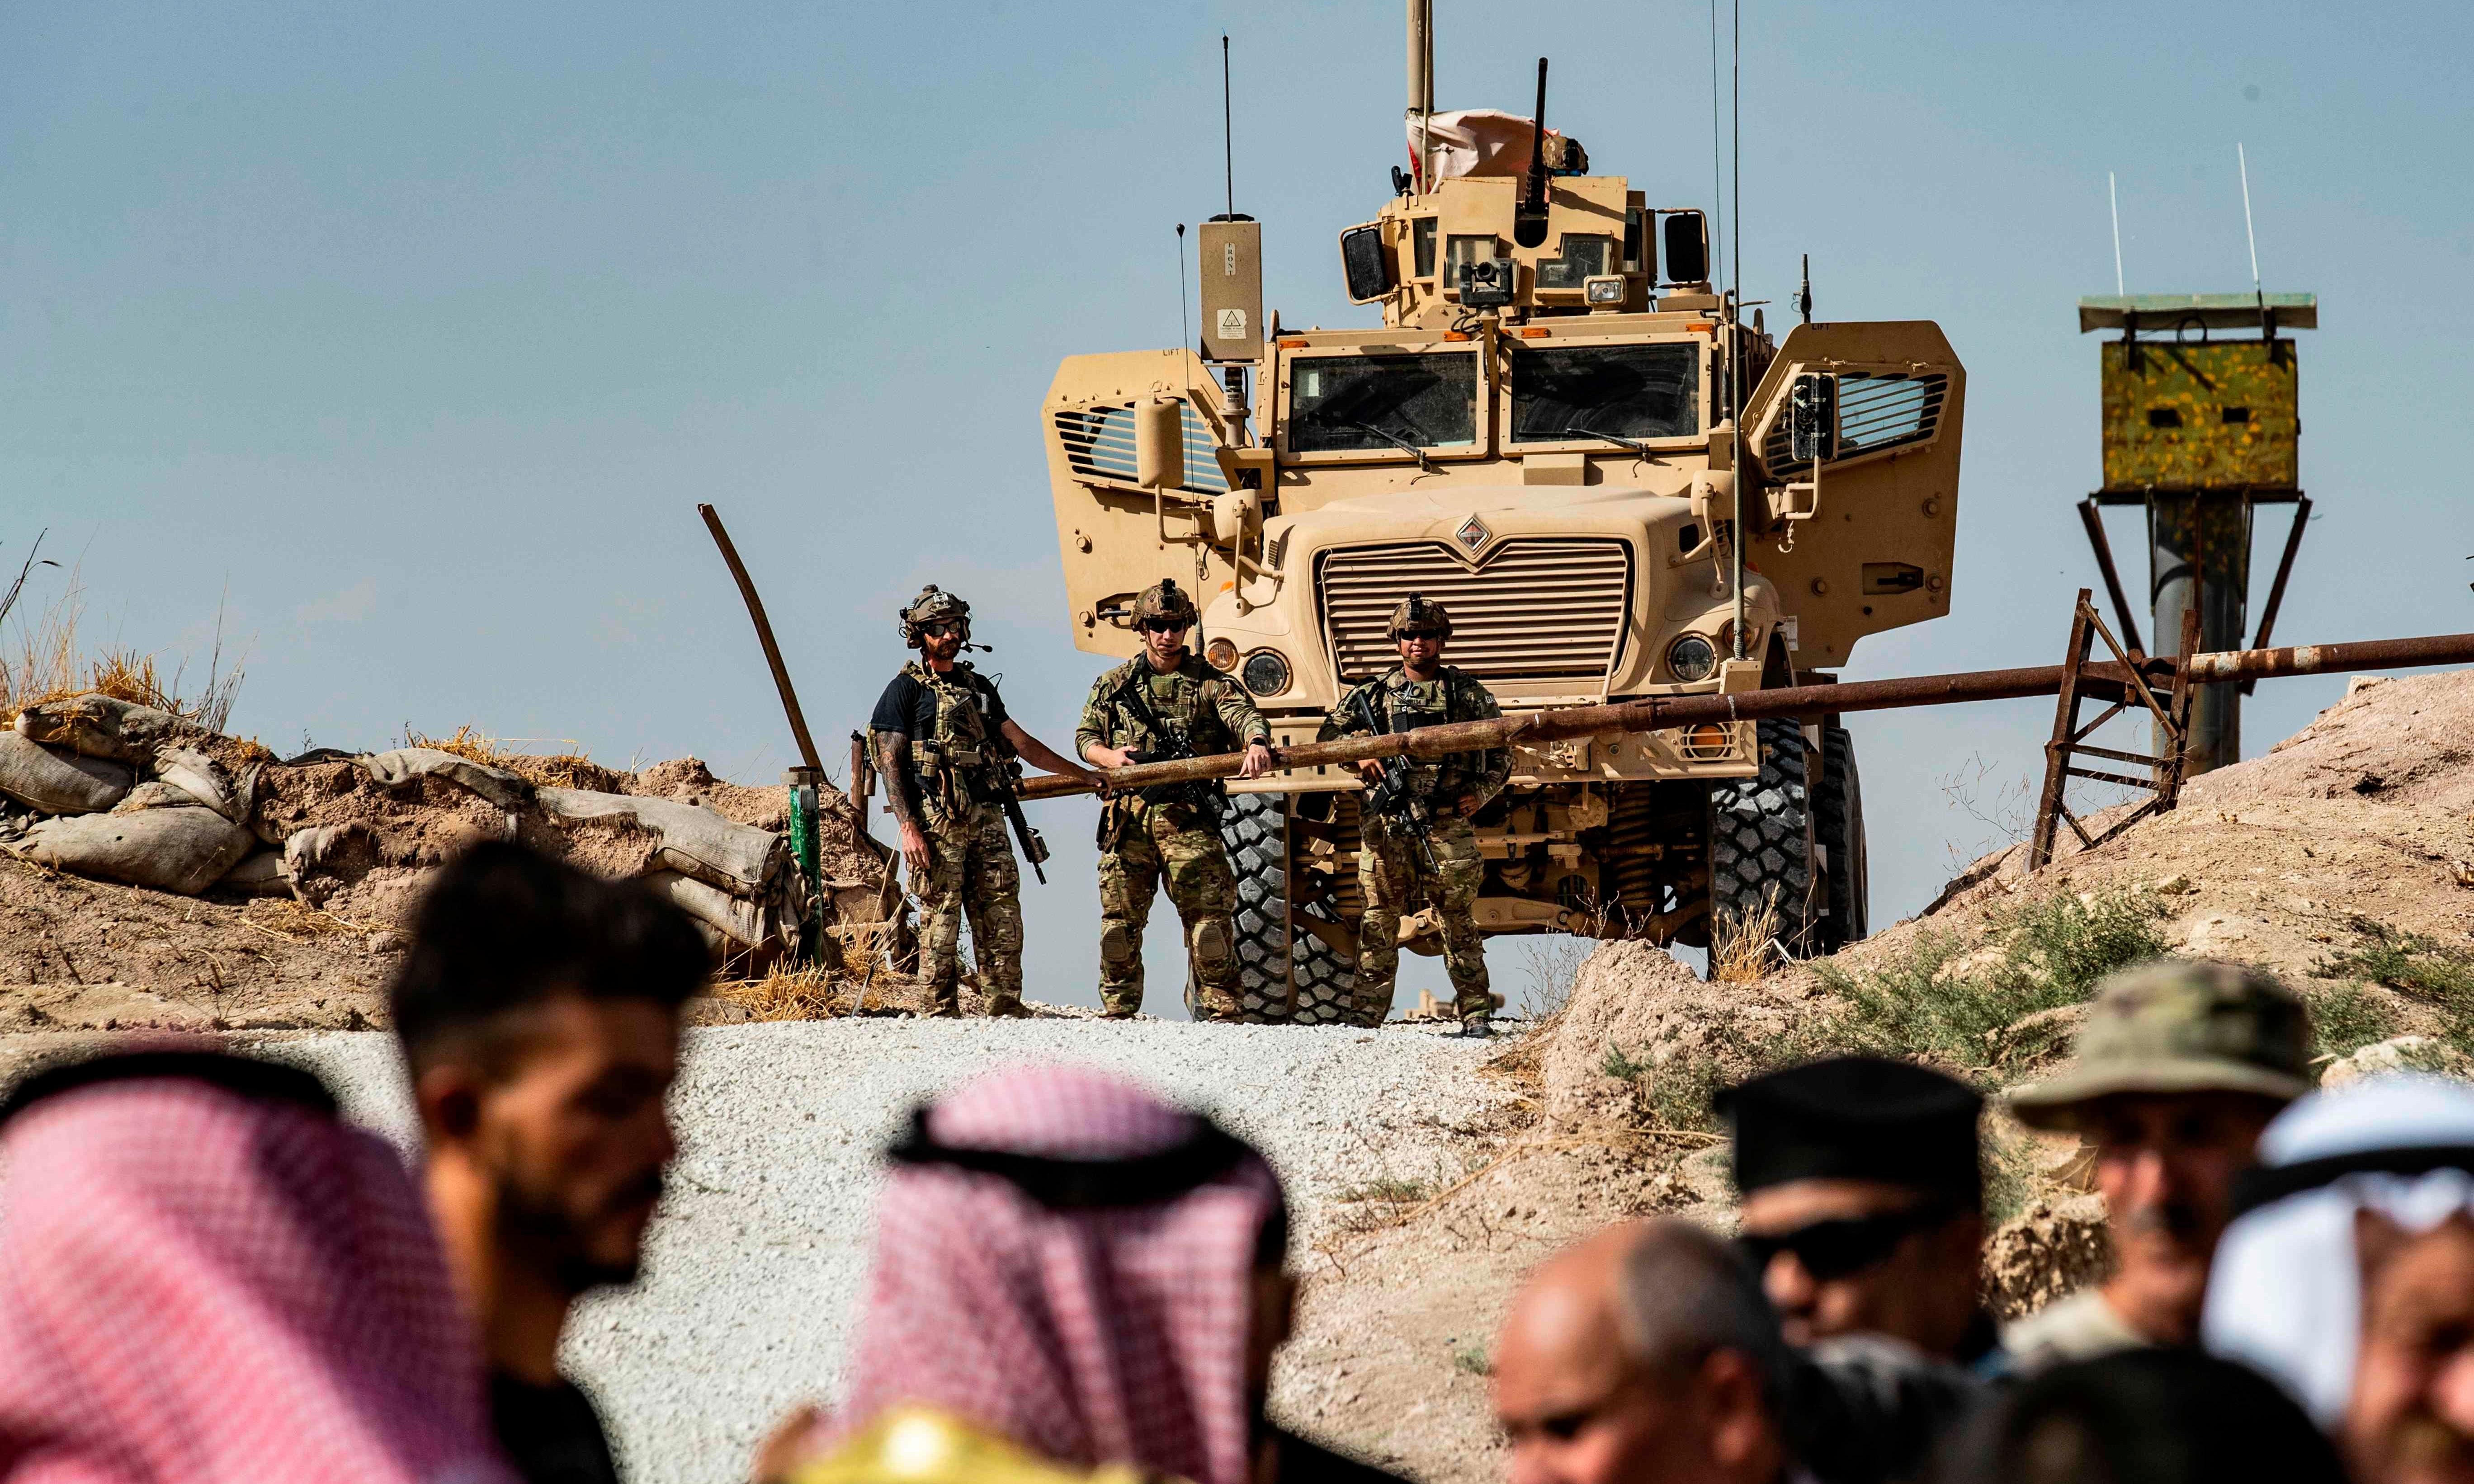 US to let Turkish forces move into Syria, dumping Kurdish allies